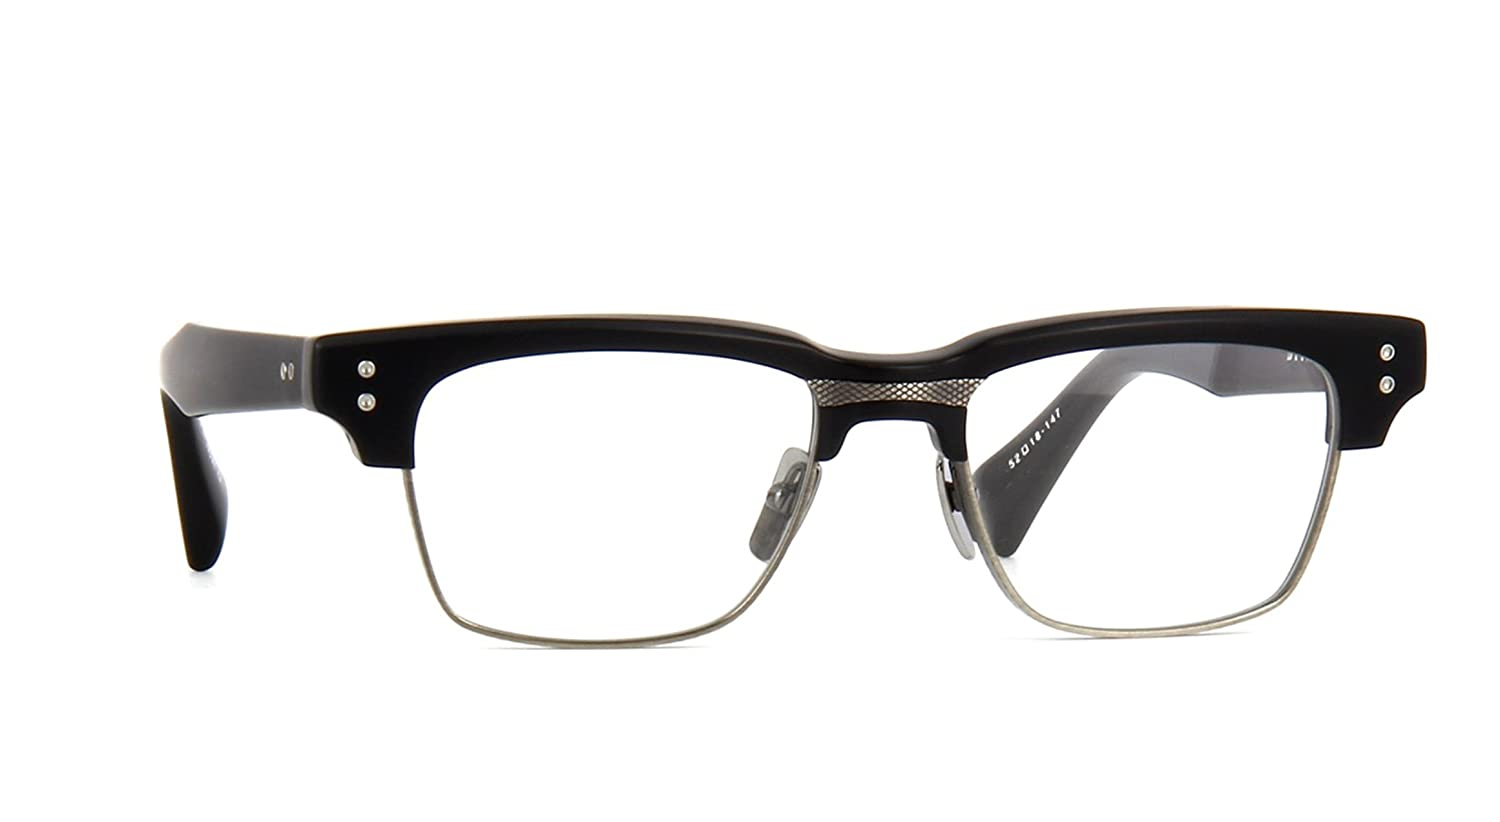 1789f4f993b5 Amazon.com  Dita GRAND RESERVE TWO DRX2061A 52mm Eyewear Matte Black -  Antique Silver  Clothing